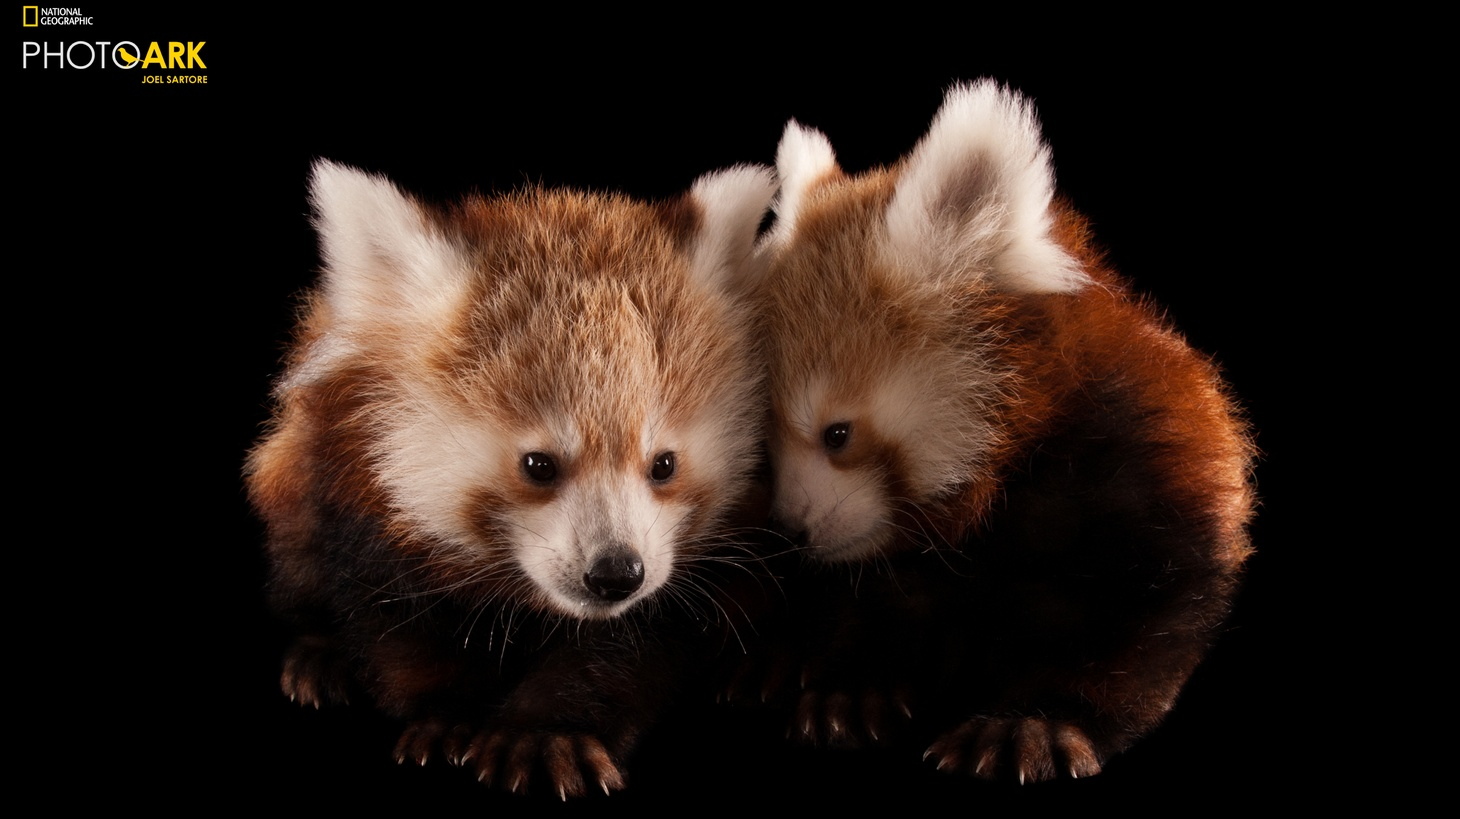 A pair of Endangered Red panda cubs (Ailurus fulgens). Photographed at the Lincoln Children's Zoo, Lincoln, Nebraska.  Through National Geographic Photo Ark EDGE Fellowships, National Geographic and the Zoological Society of London (ZSL) provide funding, training and capacity development to young conservationists working to protect at risk species that are featured in the Photo Ark, like the Red panda.